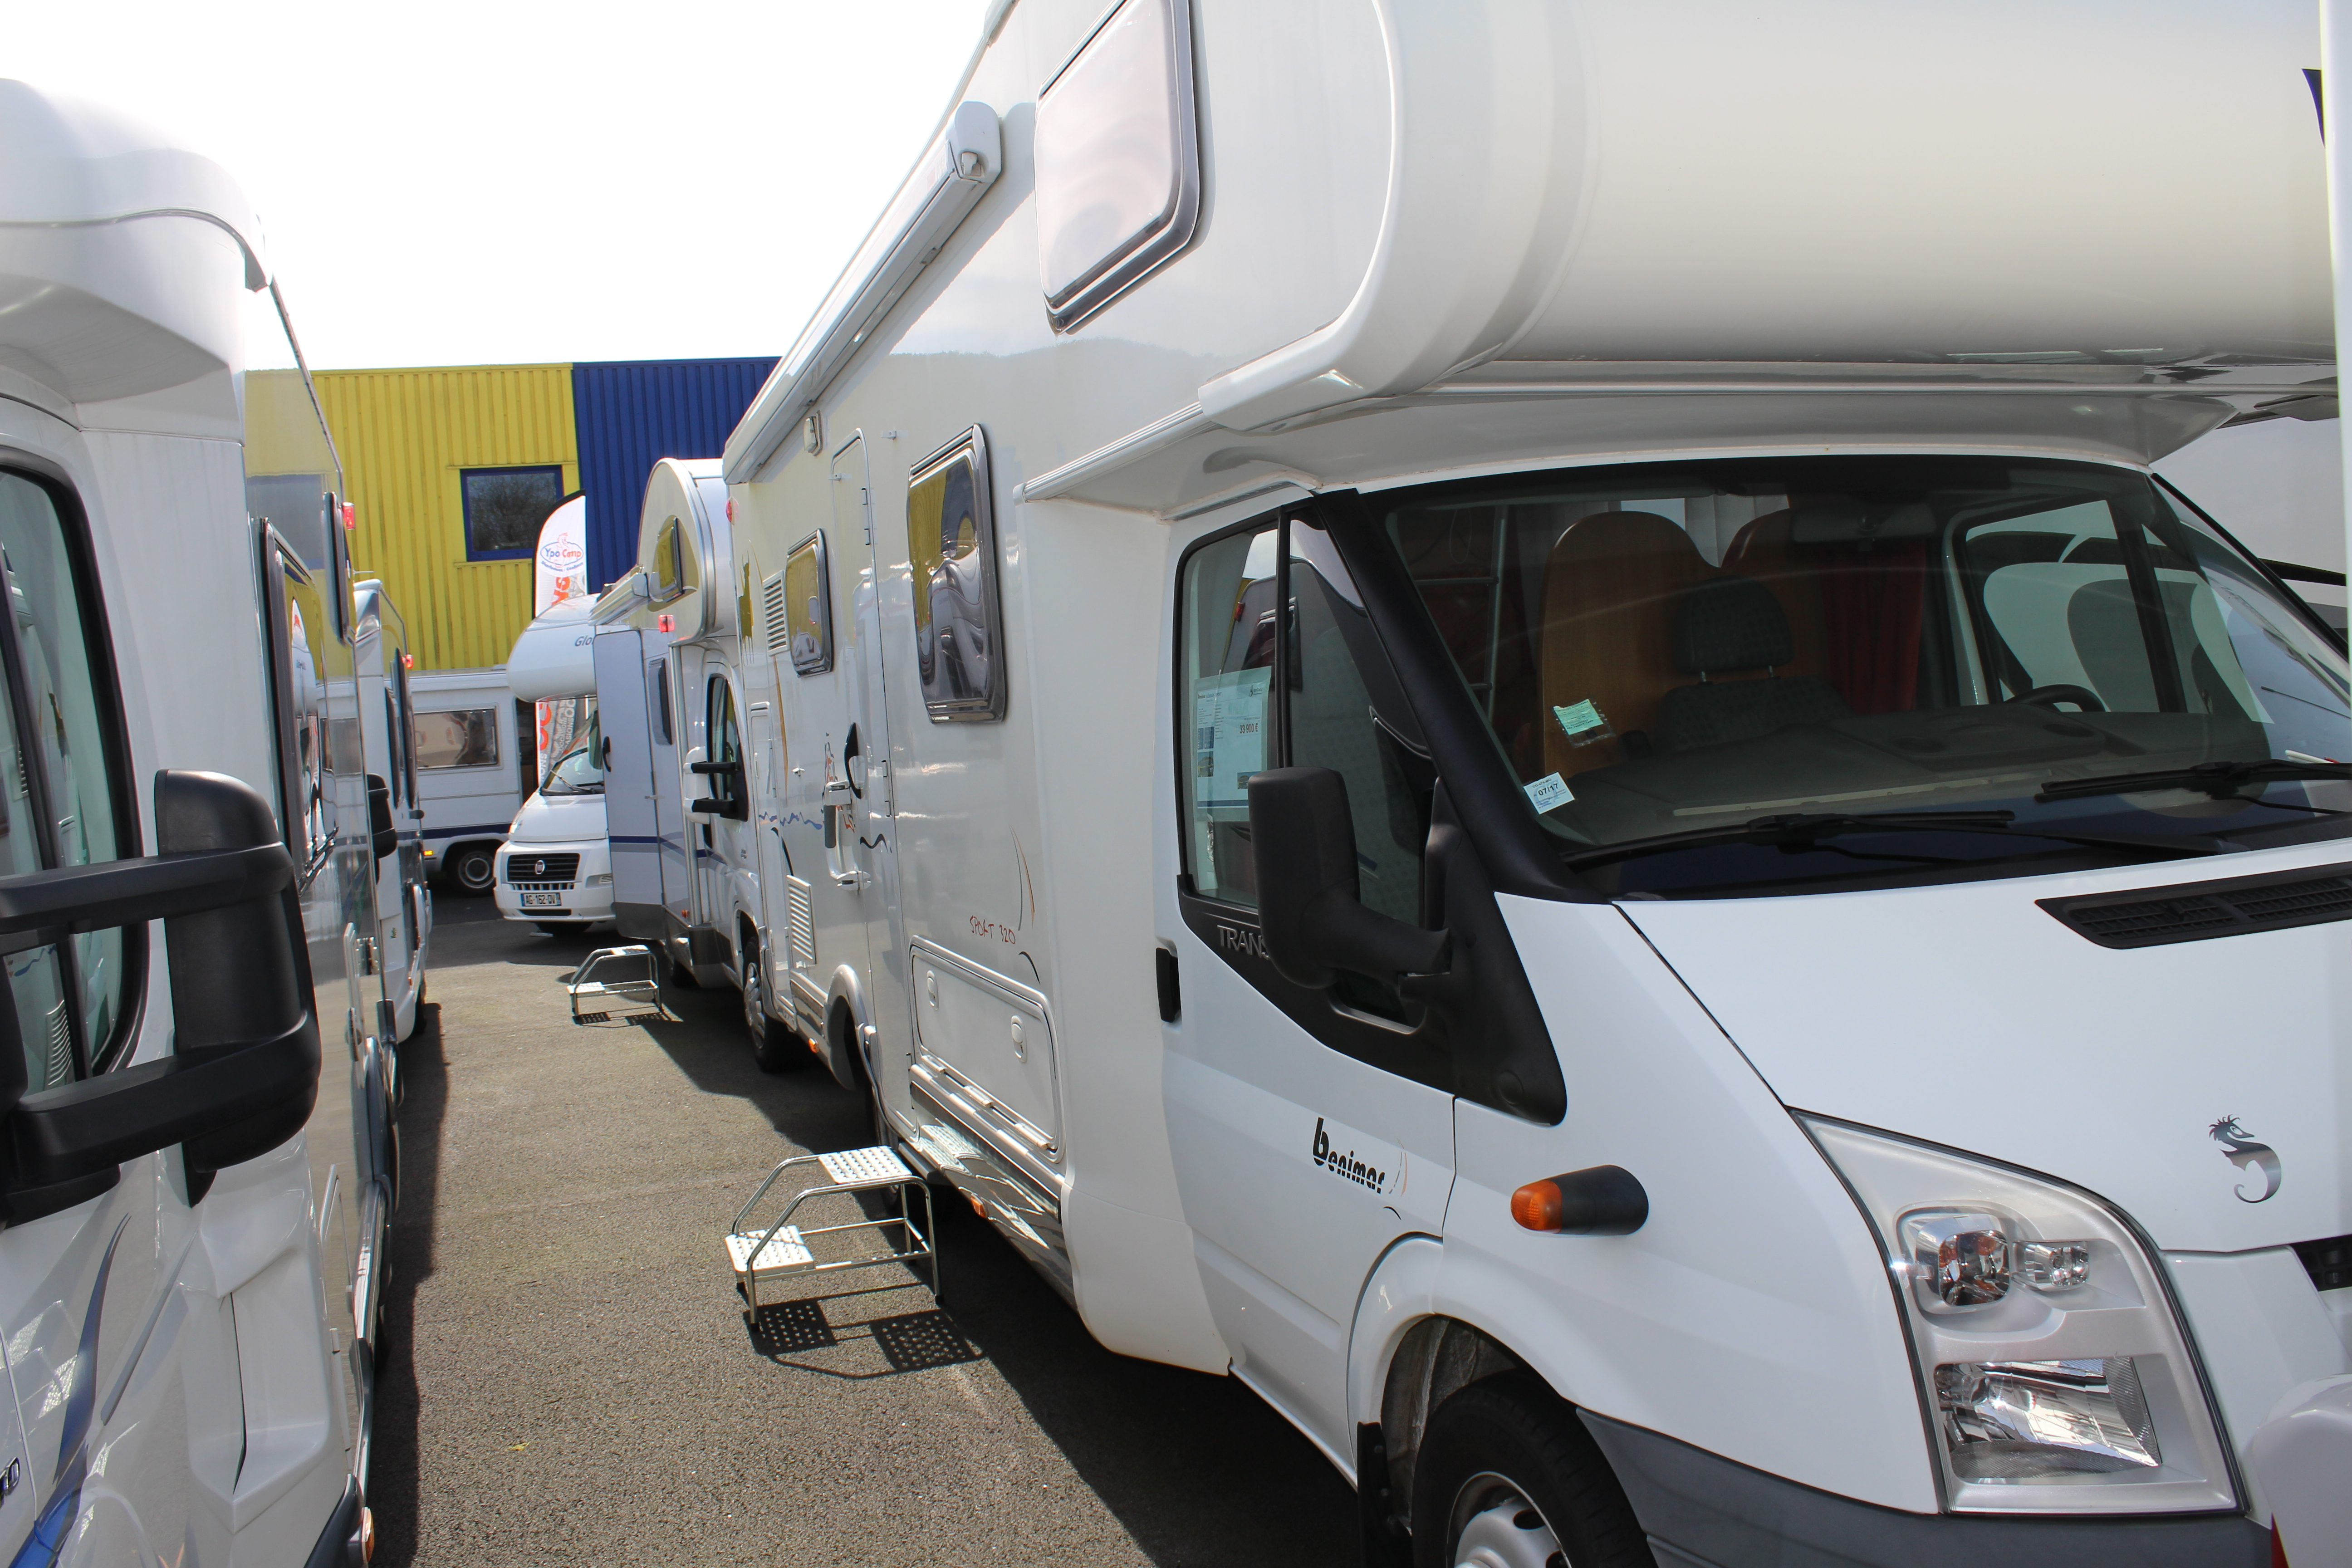 benimar sport occasion de 2008 ford camping car en vente seclin nord 59. Black Bedroom Furniture Sets. Home Design Ideas